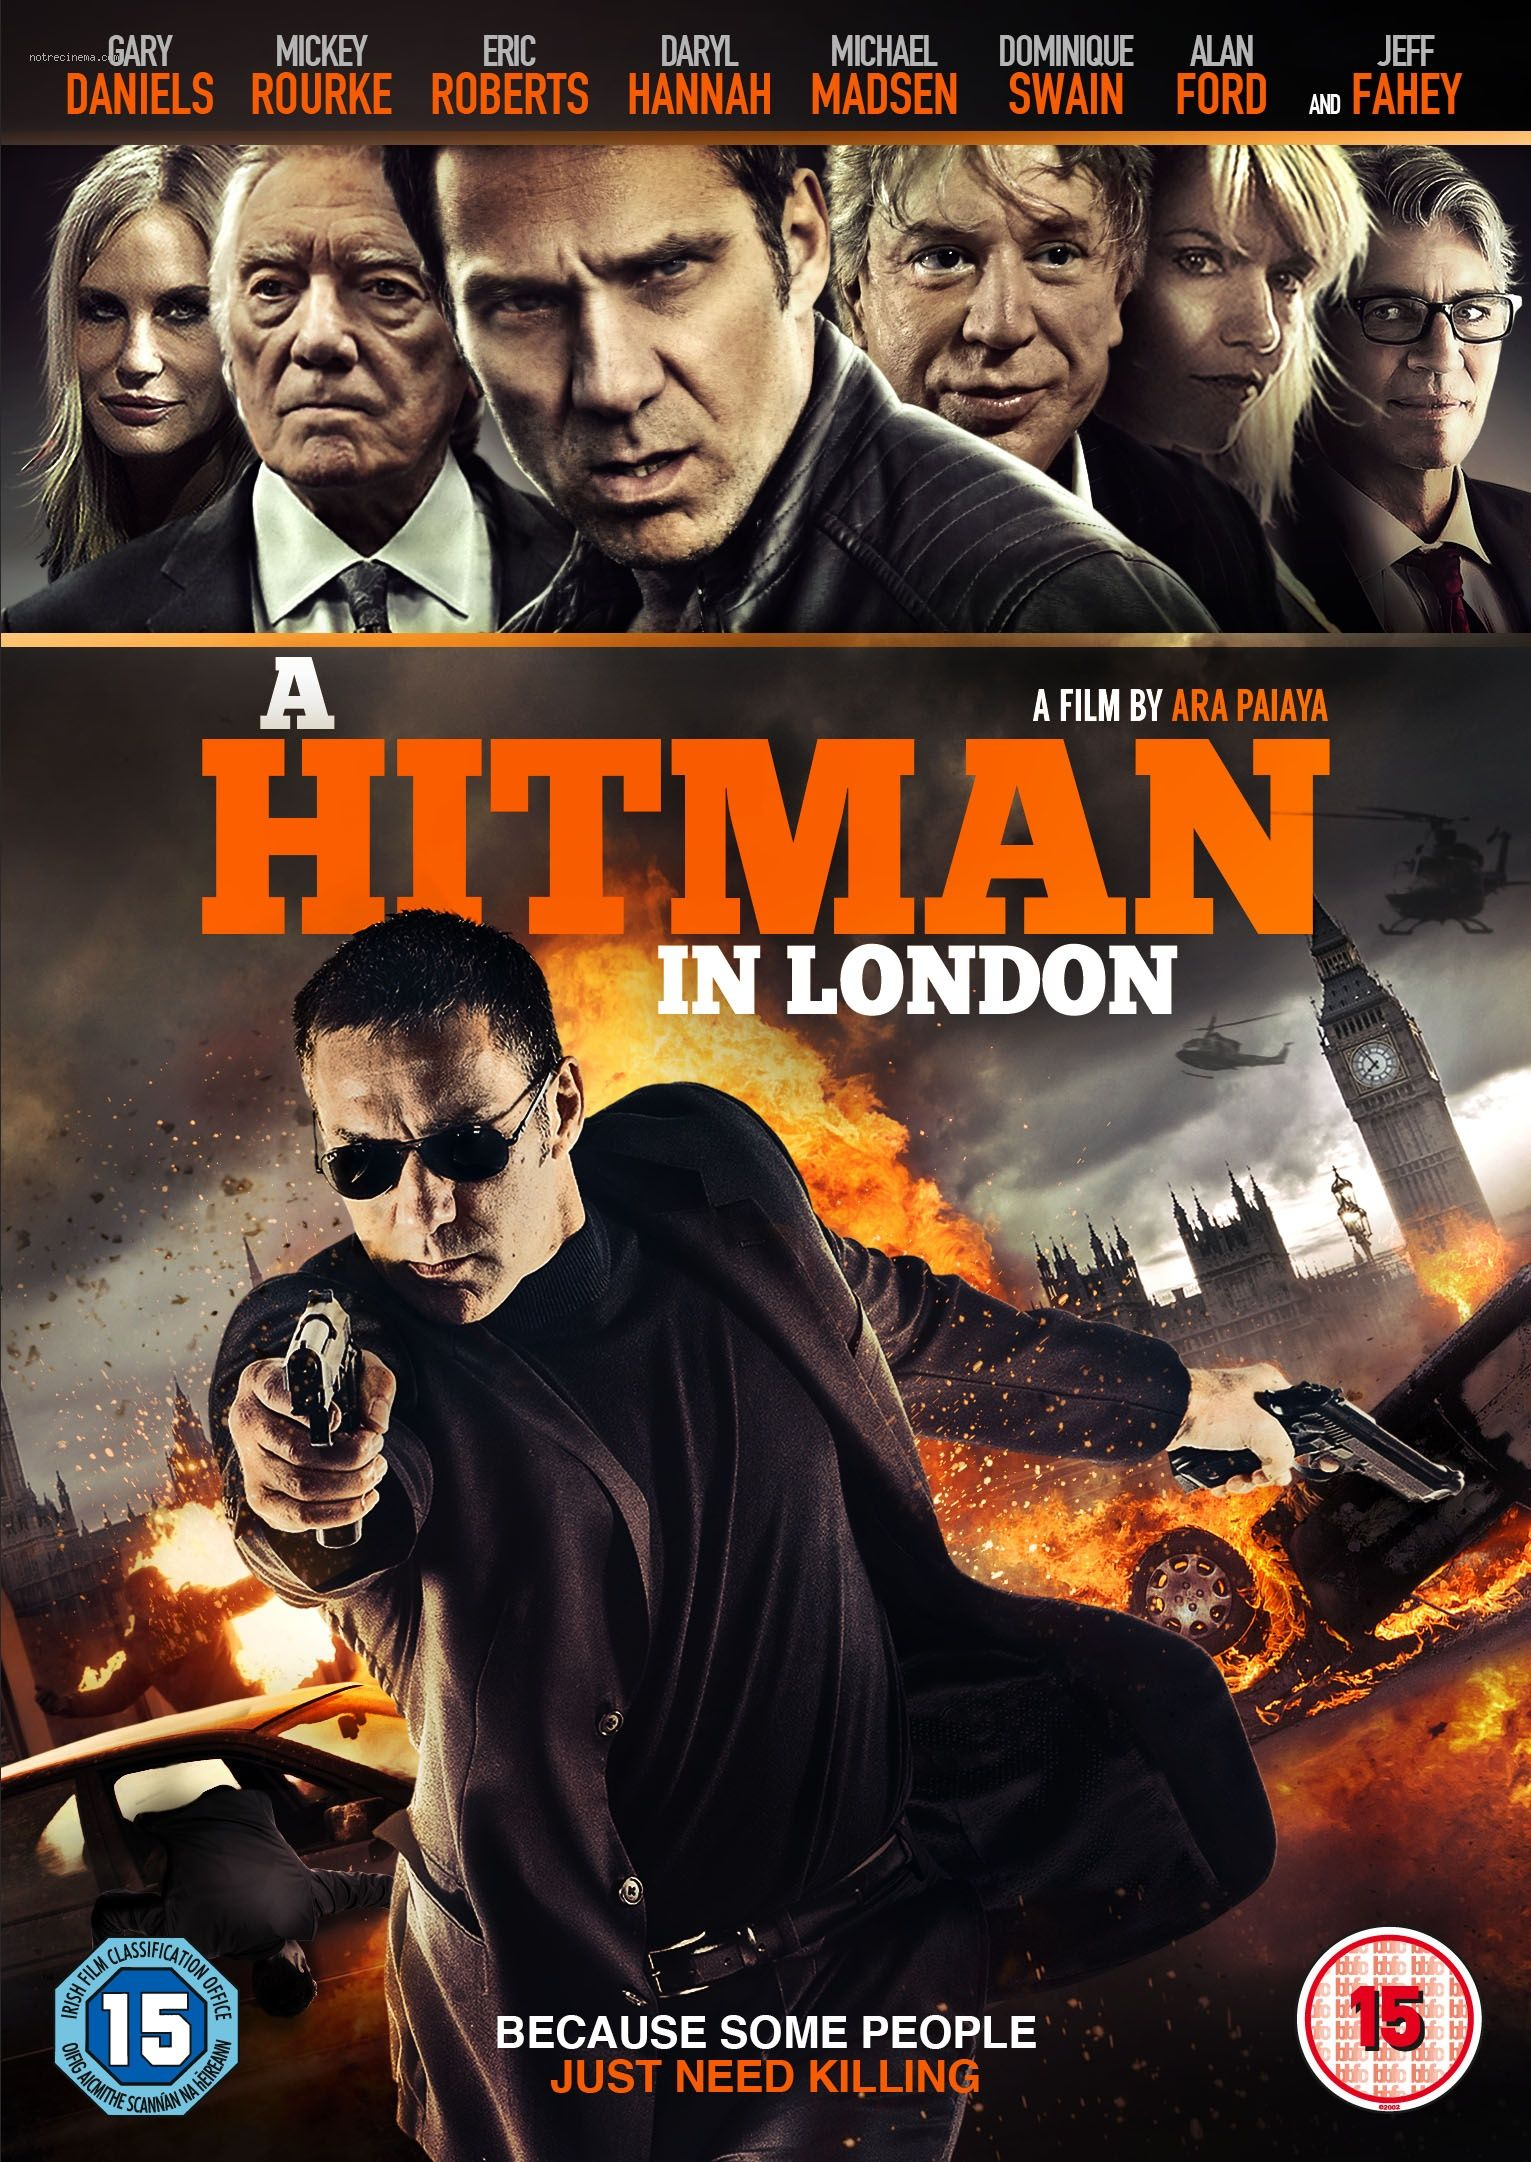 A Hitman in London Full movies online free, Hitman, Movies